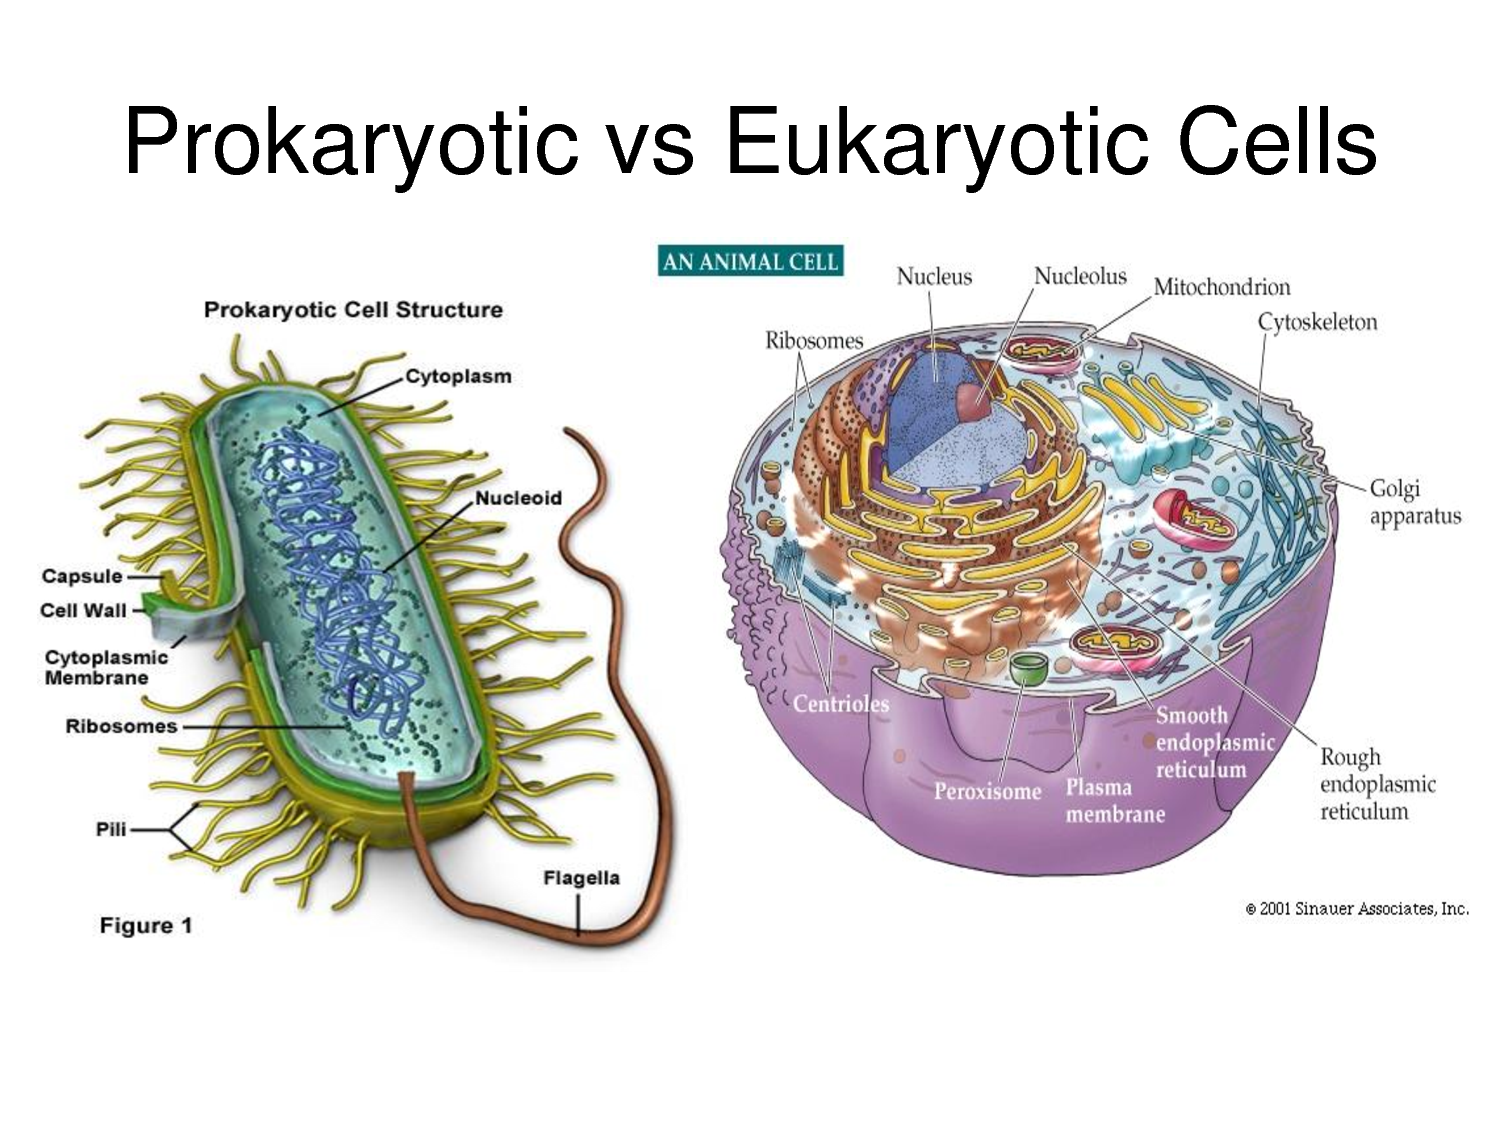 prokaryotic vs eukaryotic - Google Search | Science ...